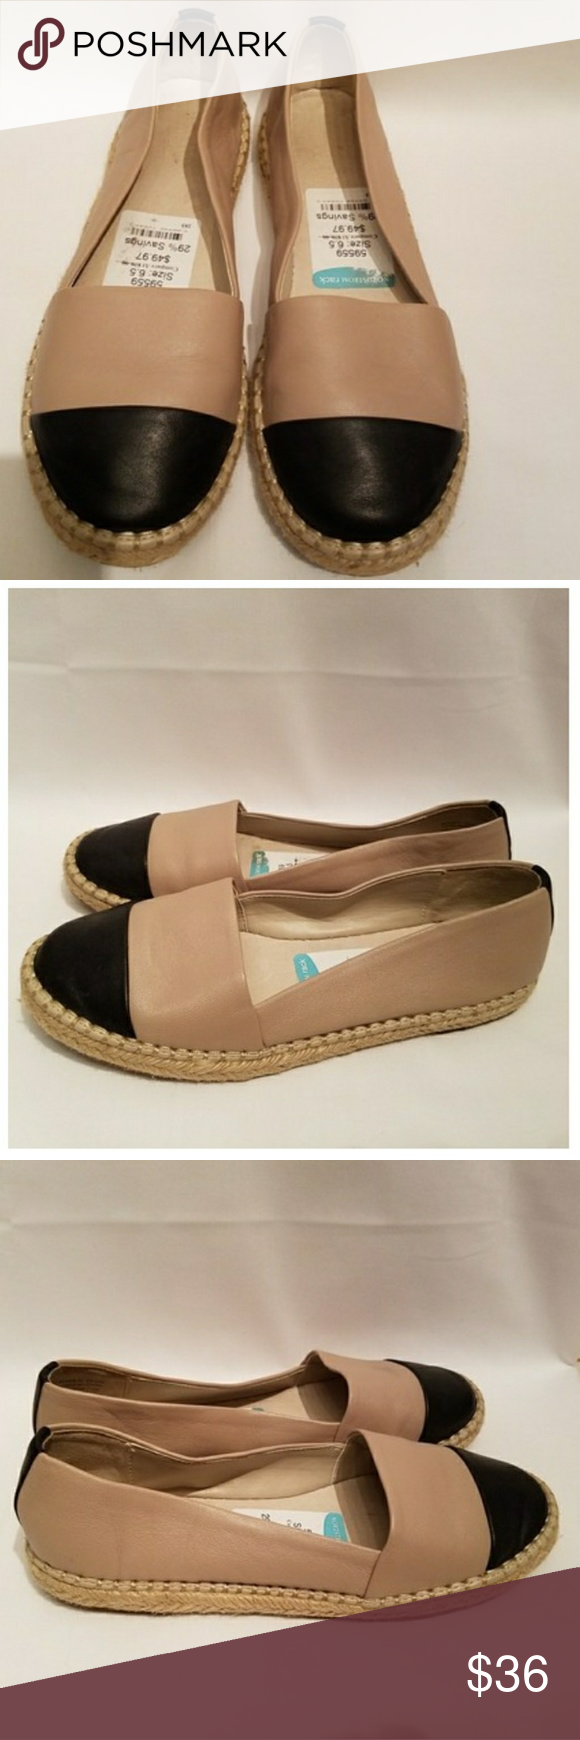 746052f86 Aldo Oleawiel Color Block Leather Espadrille Cute pair of Aldo leather  espadrilles that are almost new